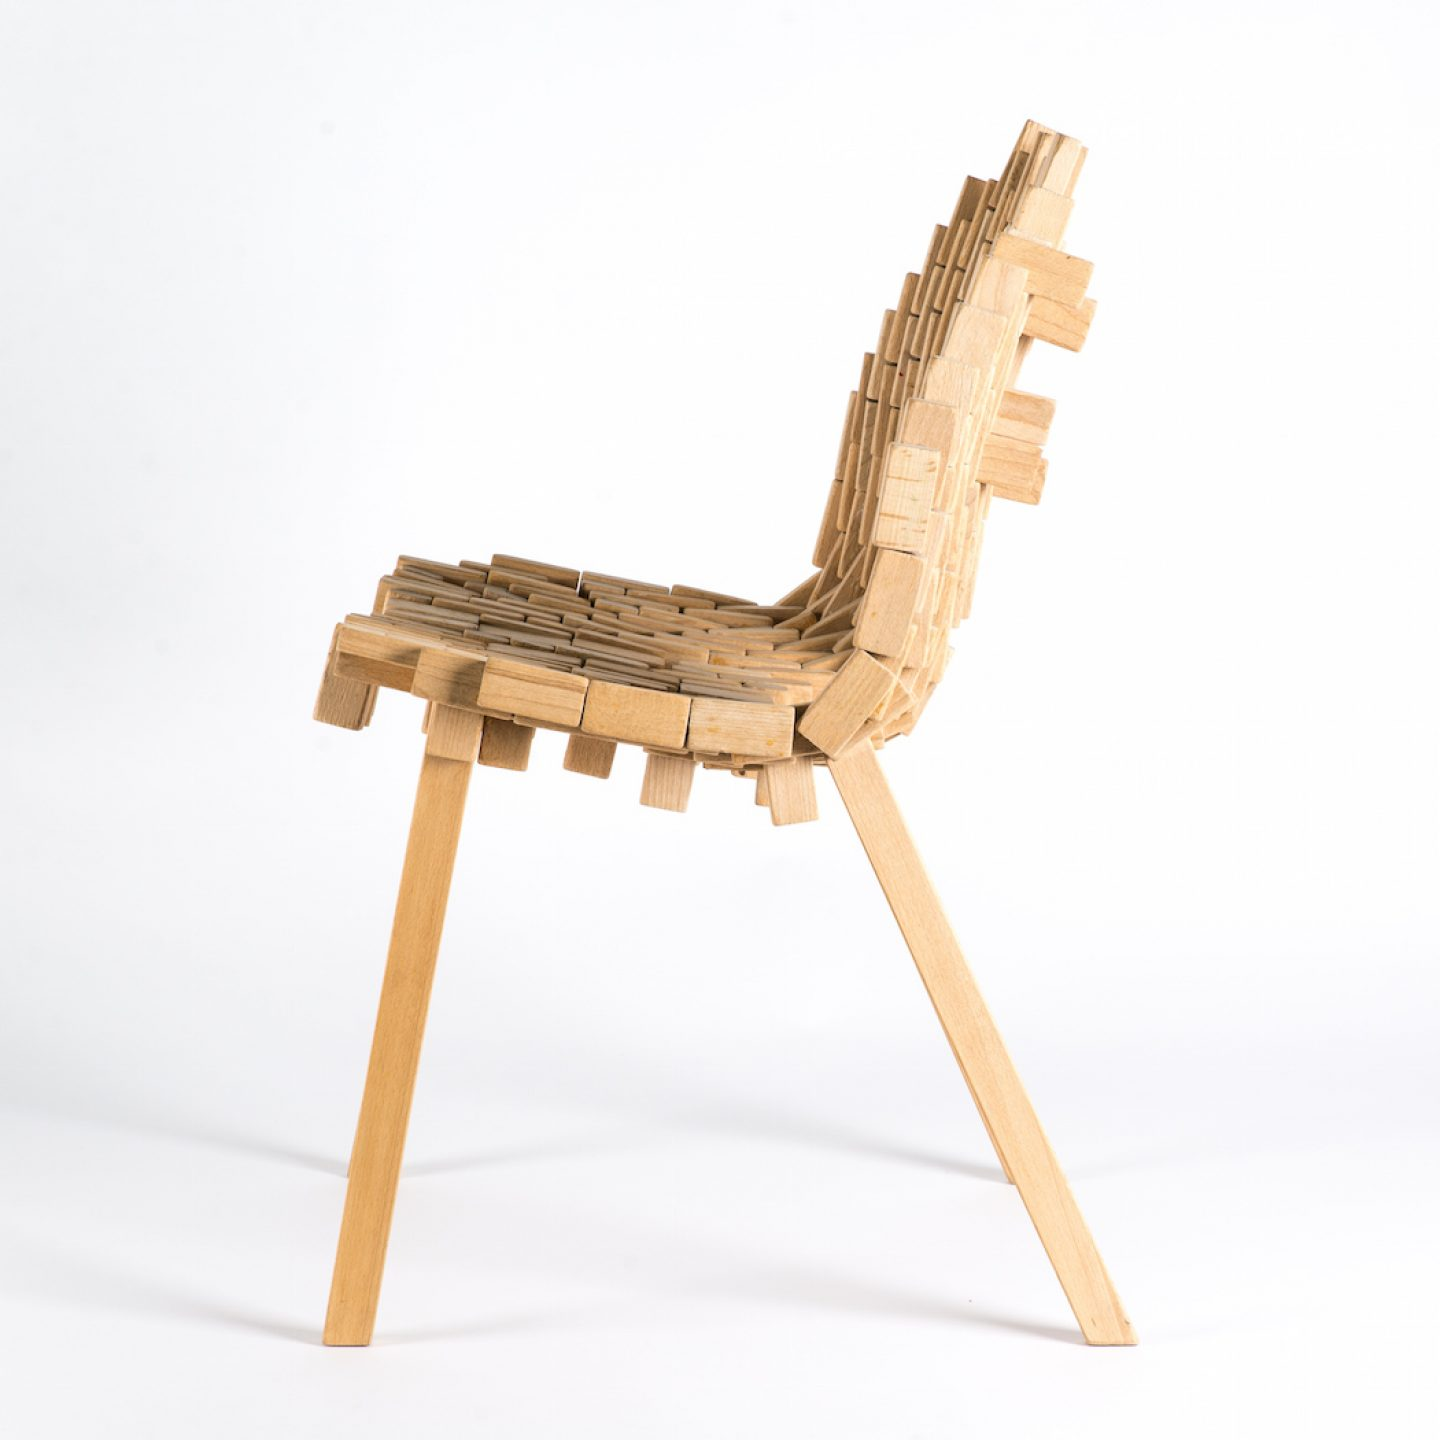 Bricks-chair-01